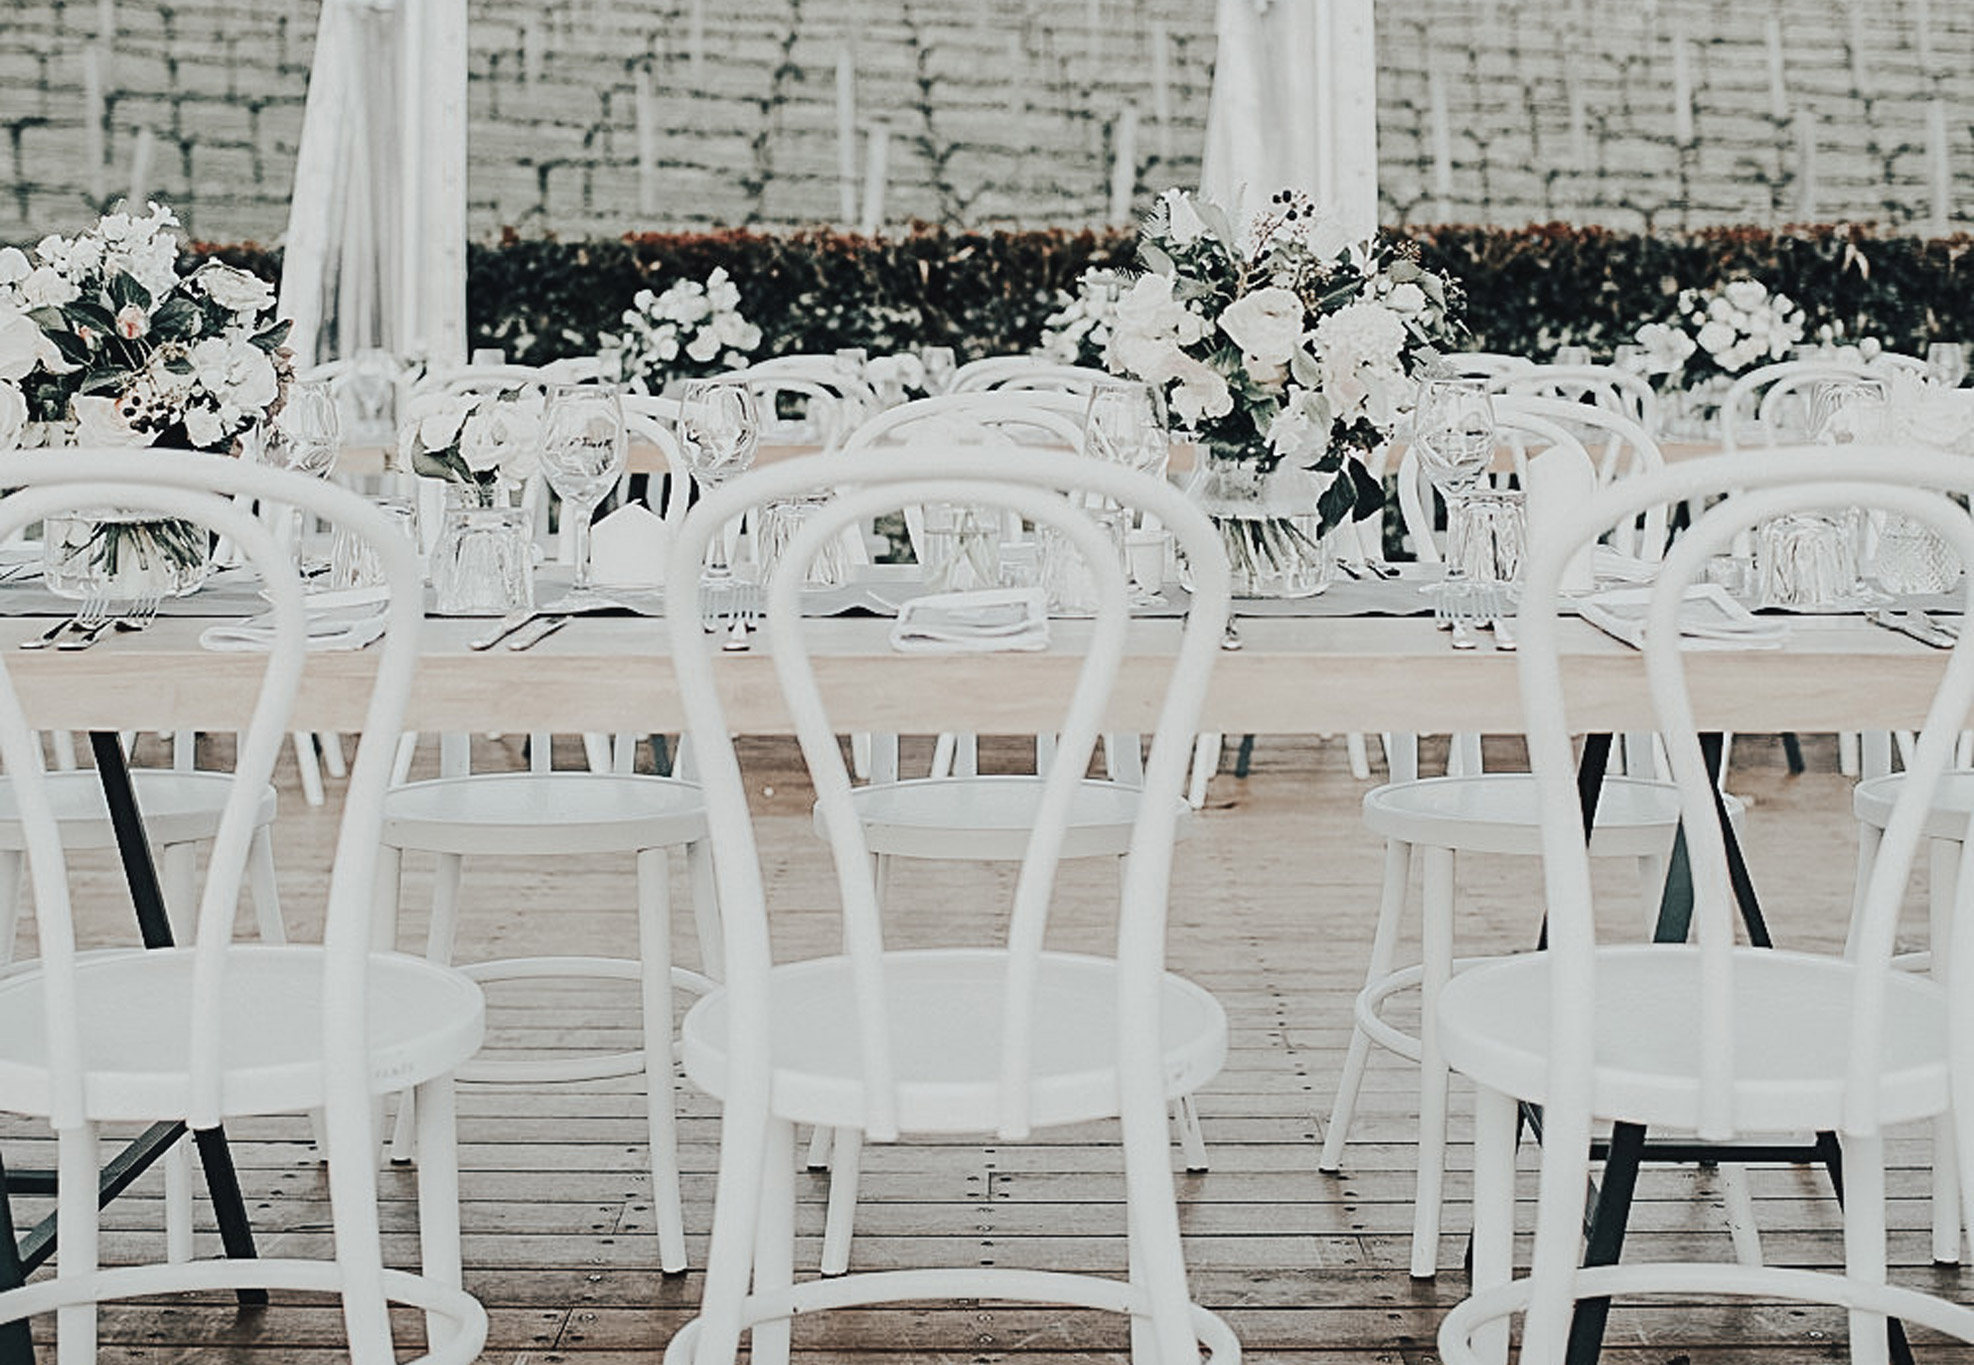 silk-estate-marquee-weddings-and-events-styling-and-hire-furniture-chairs-Bentwood-Chair